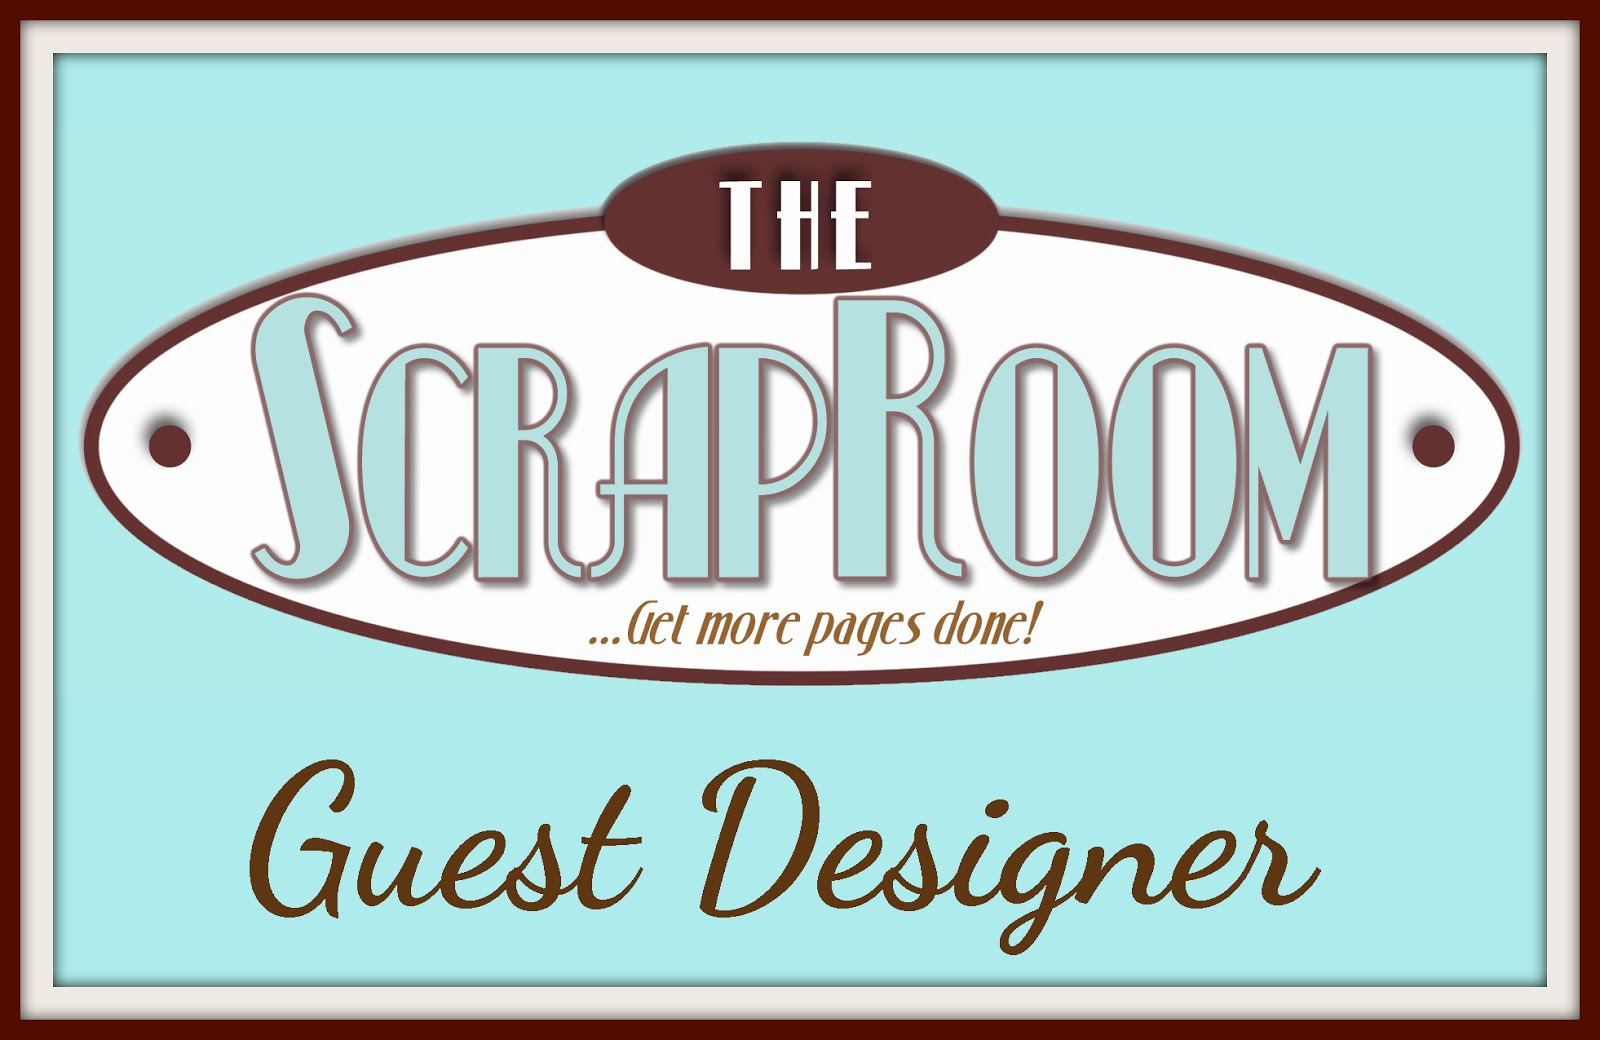 The ScrapRoom